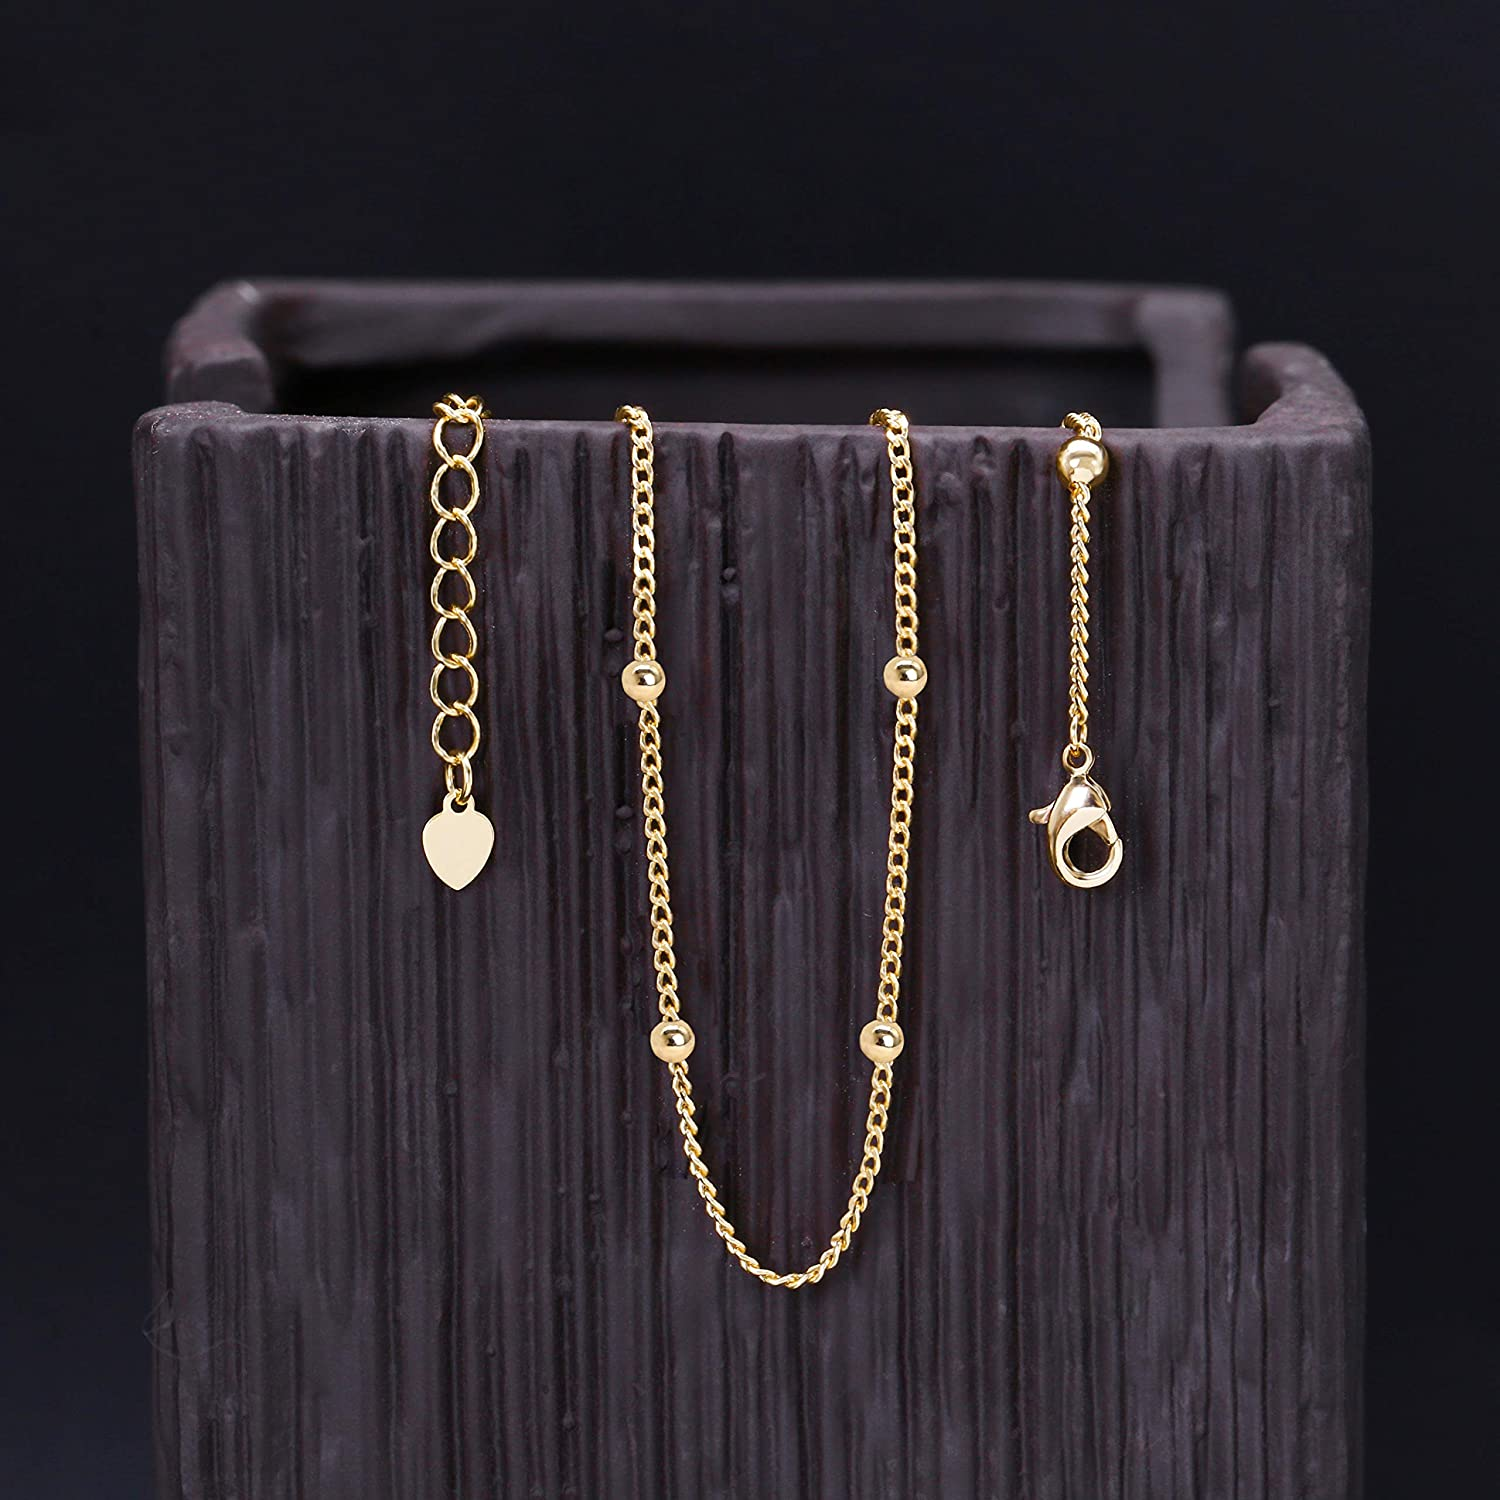 efd491ecd49db 18k Gold Satellite Chain Choker Lava Bead Pendant Necklace Dainty Jewelry  for Women 16''